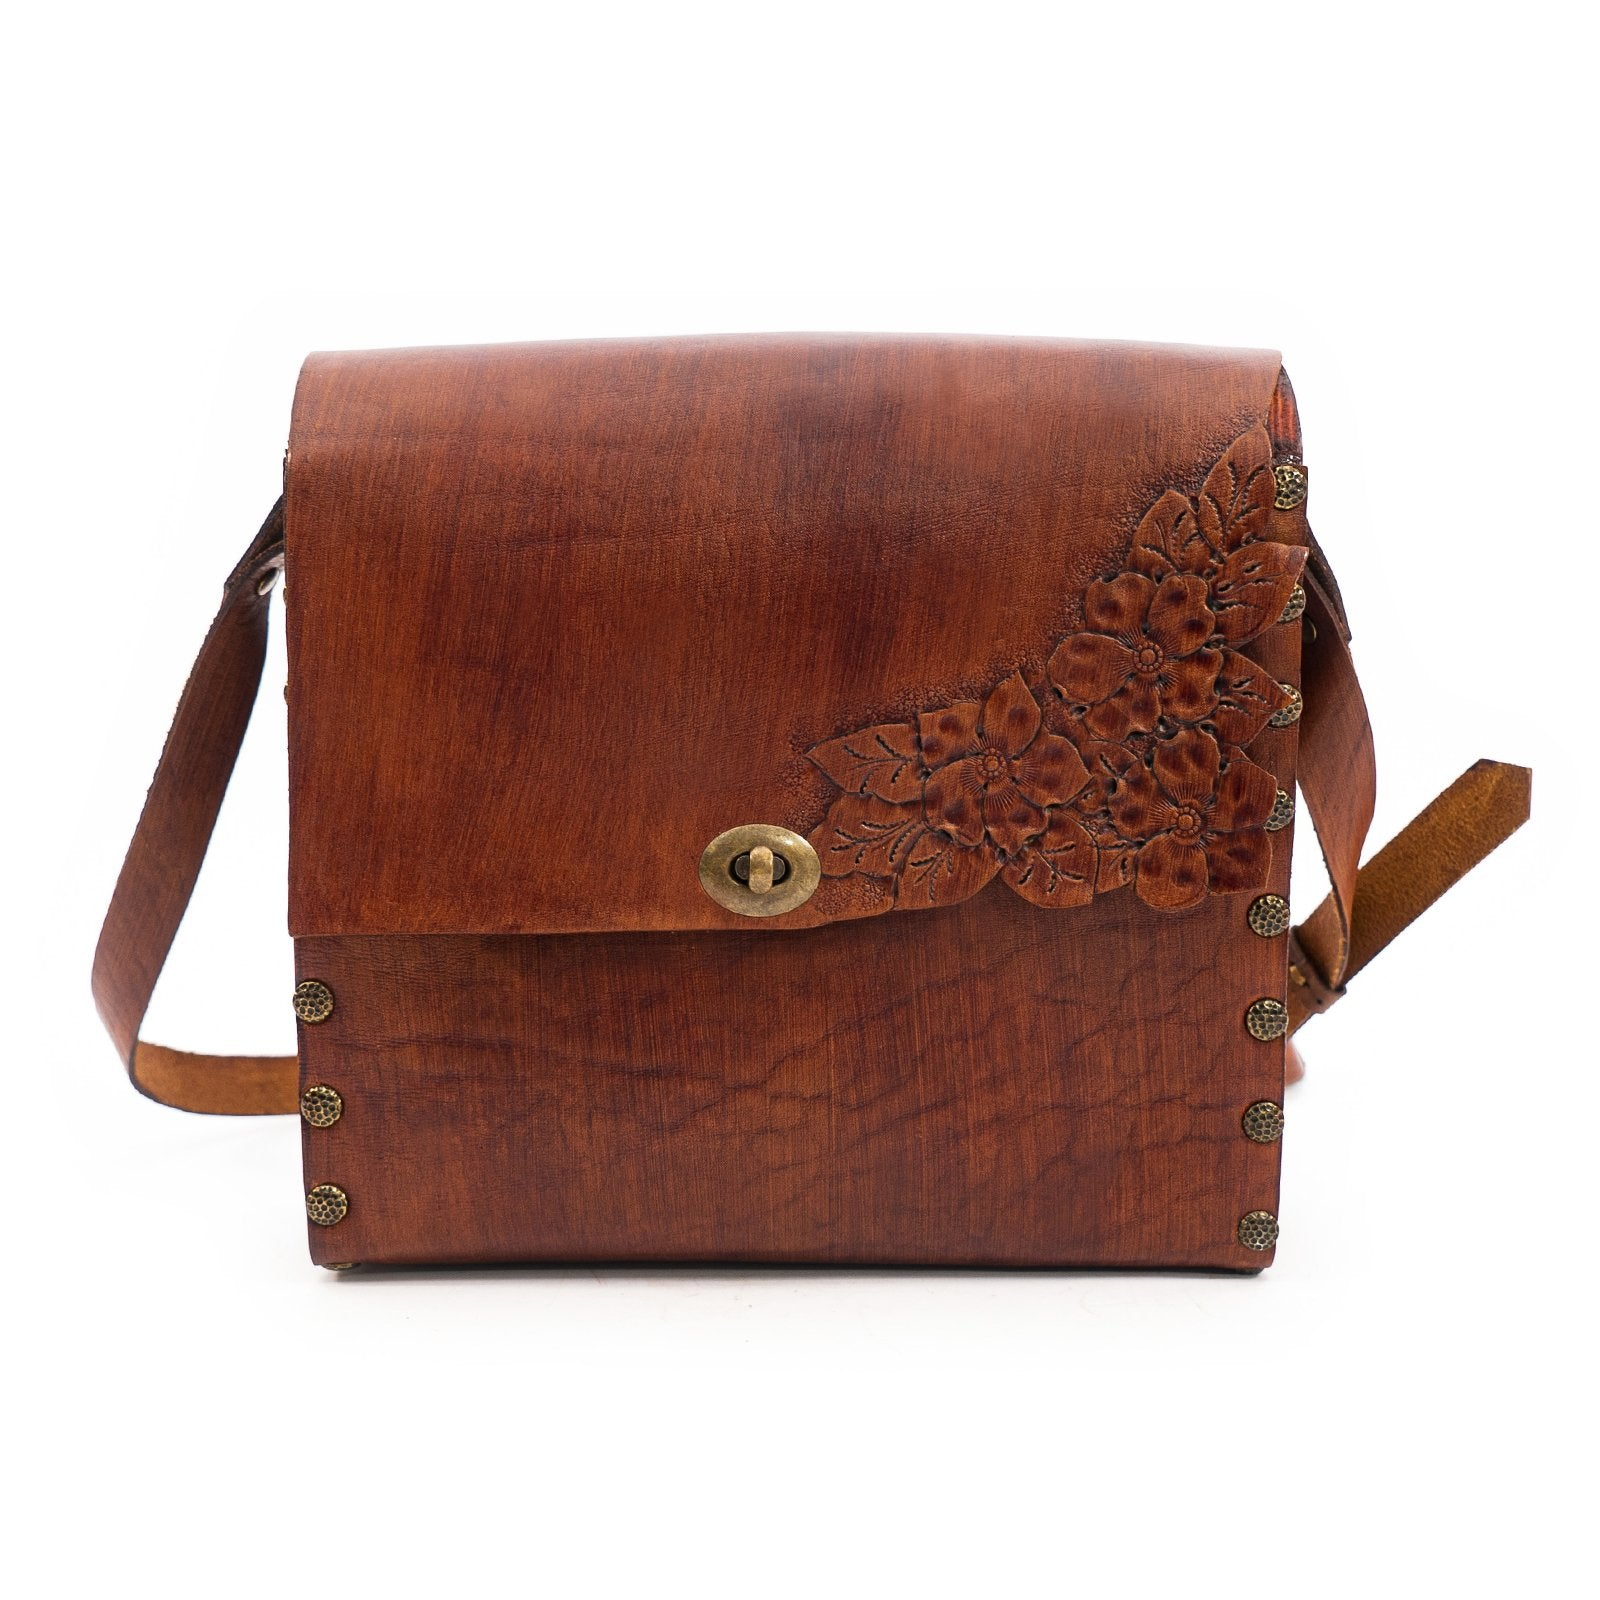 Derifix Genotya Women's Handmade Leather Bag